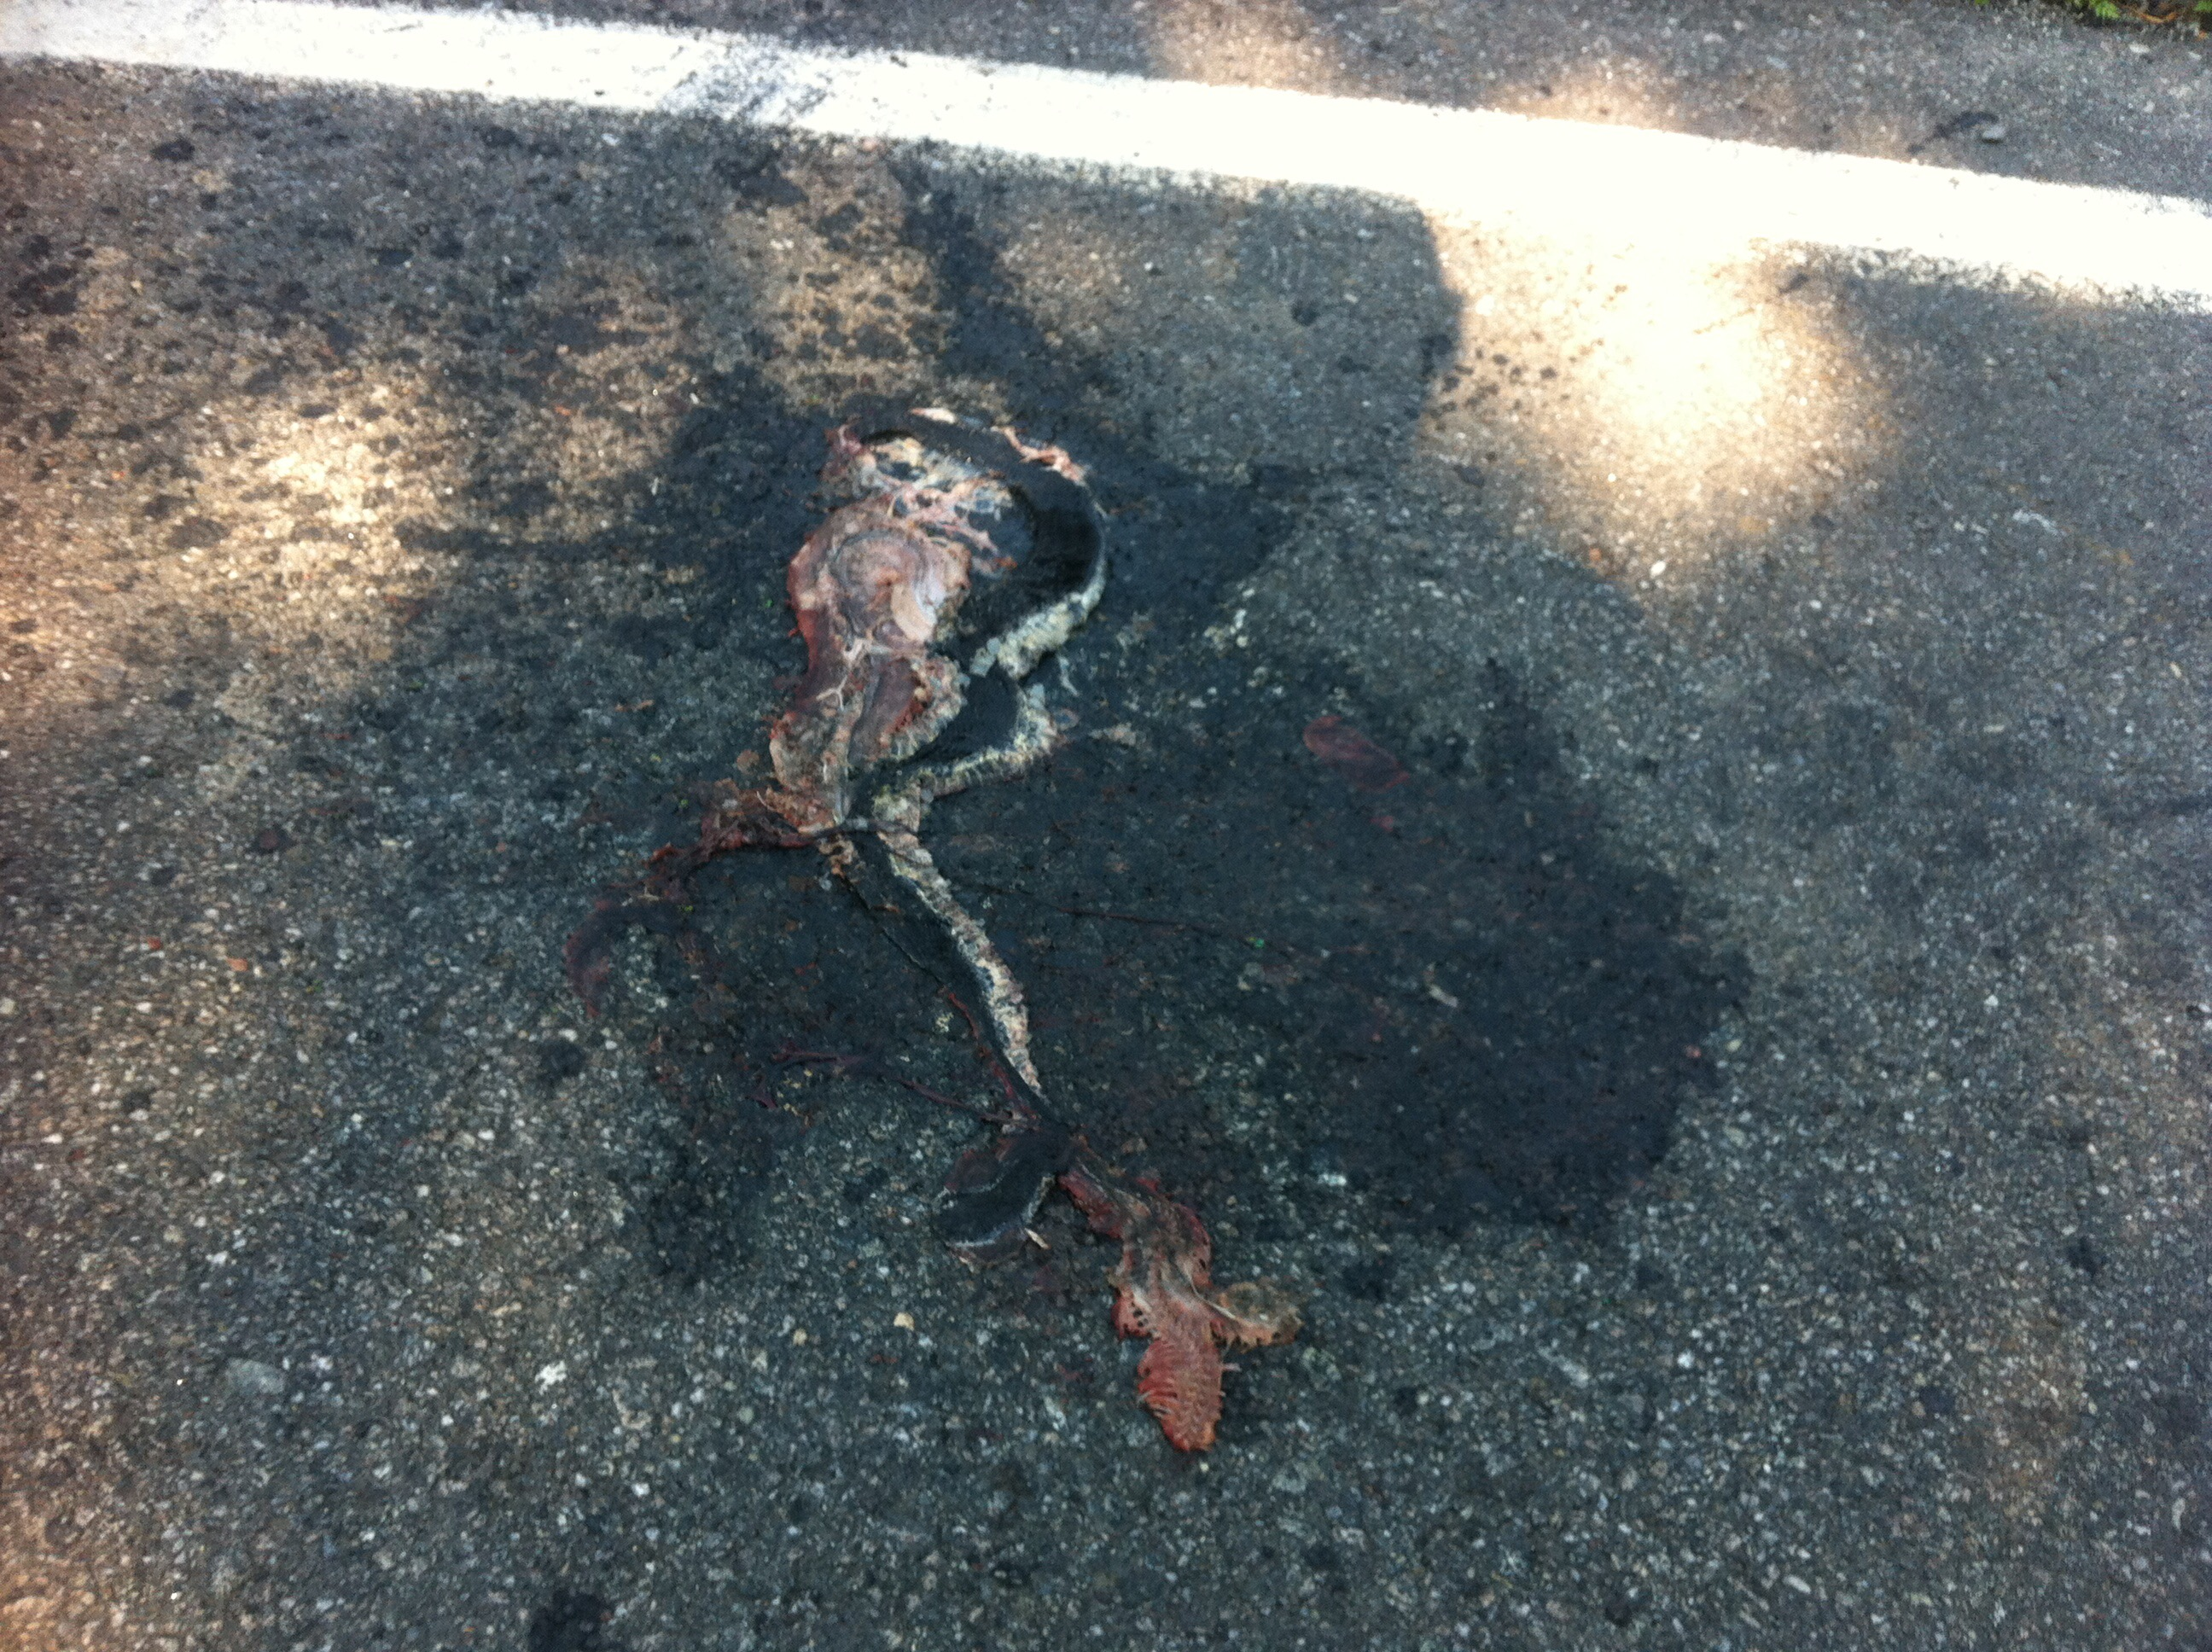 Avoiding Roadkill: Timber rattlesnake killed on Lake Shore Road (Source: John Davis)